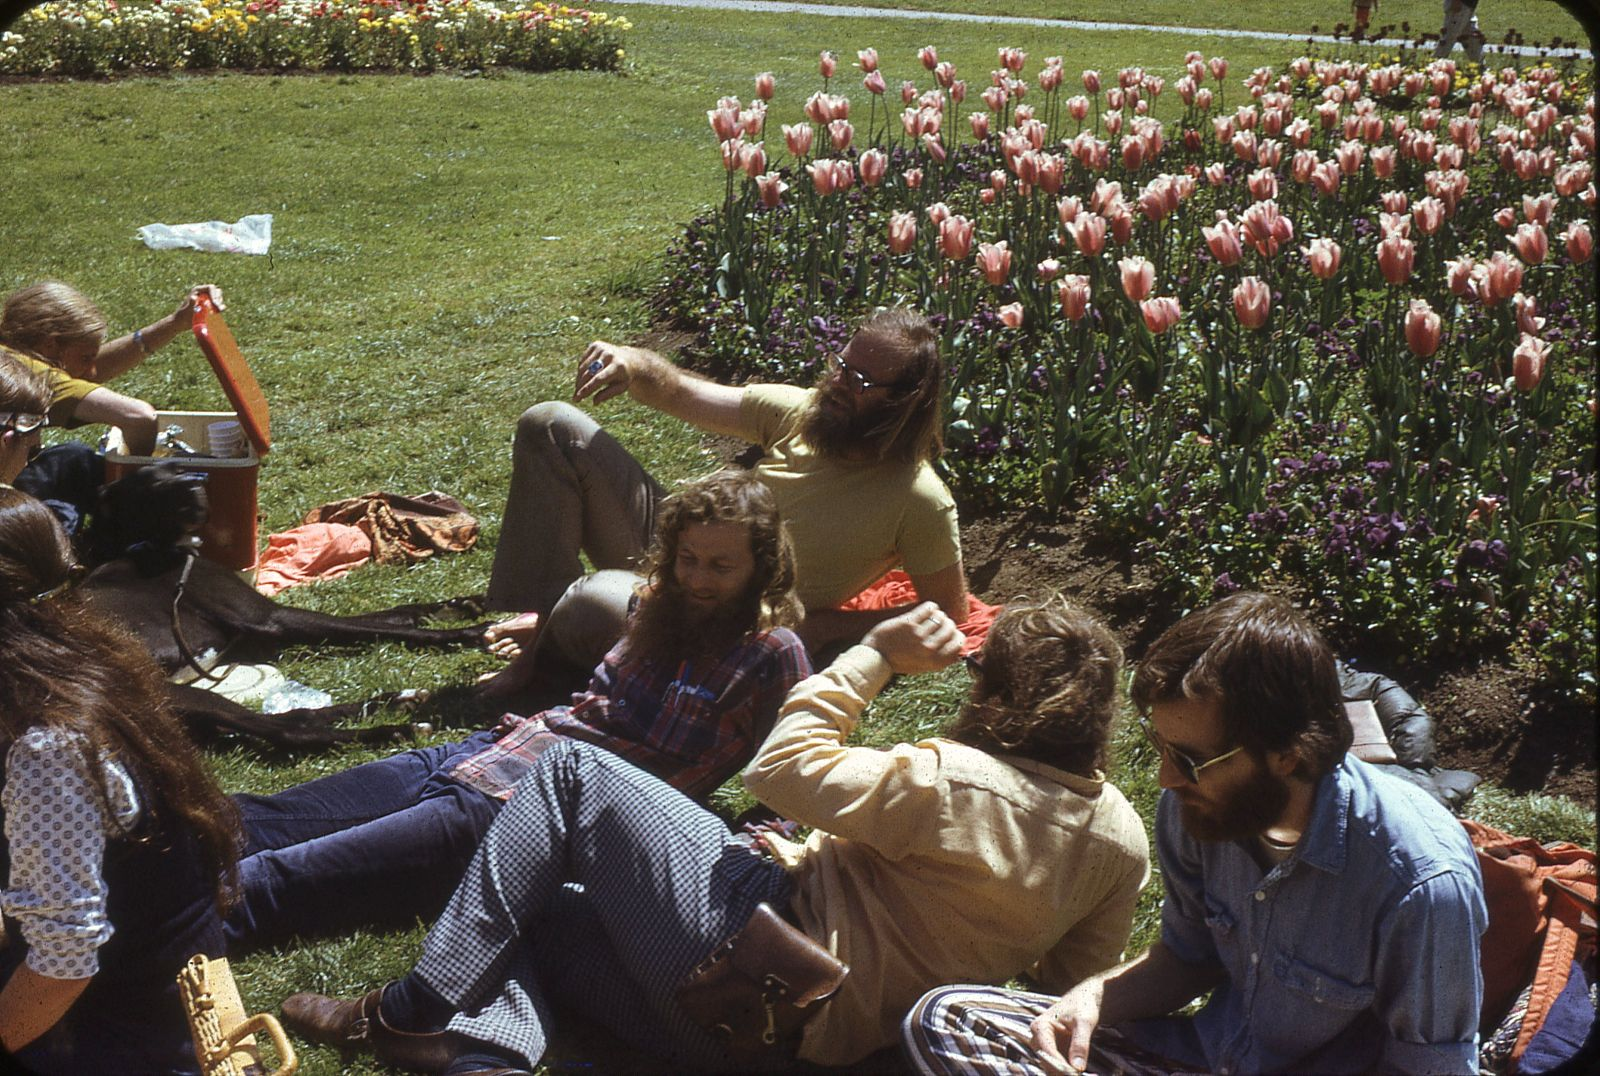 Jim Gray with former colleagues of the CAL Timesharing project at U.C. Berkeley, Golden Gate Park, April 1974